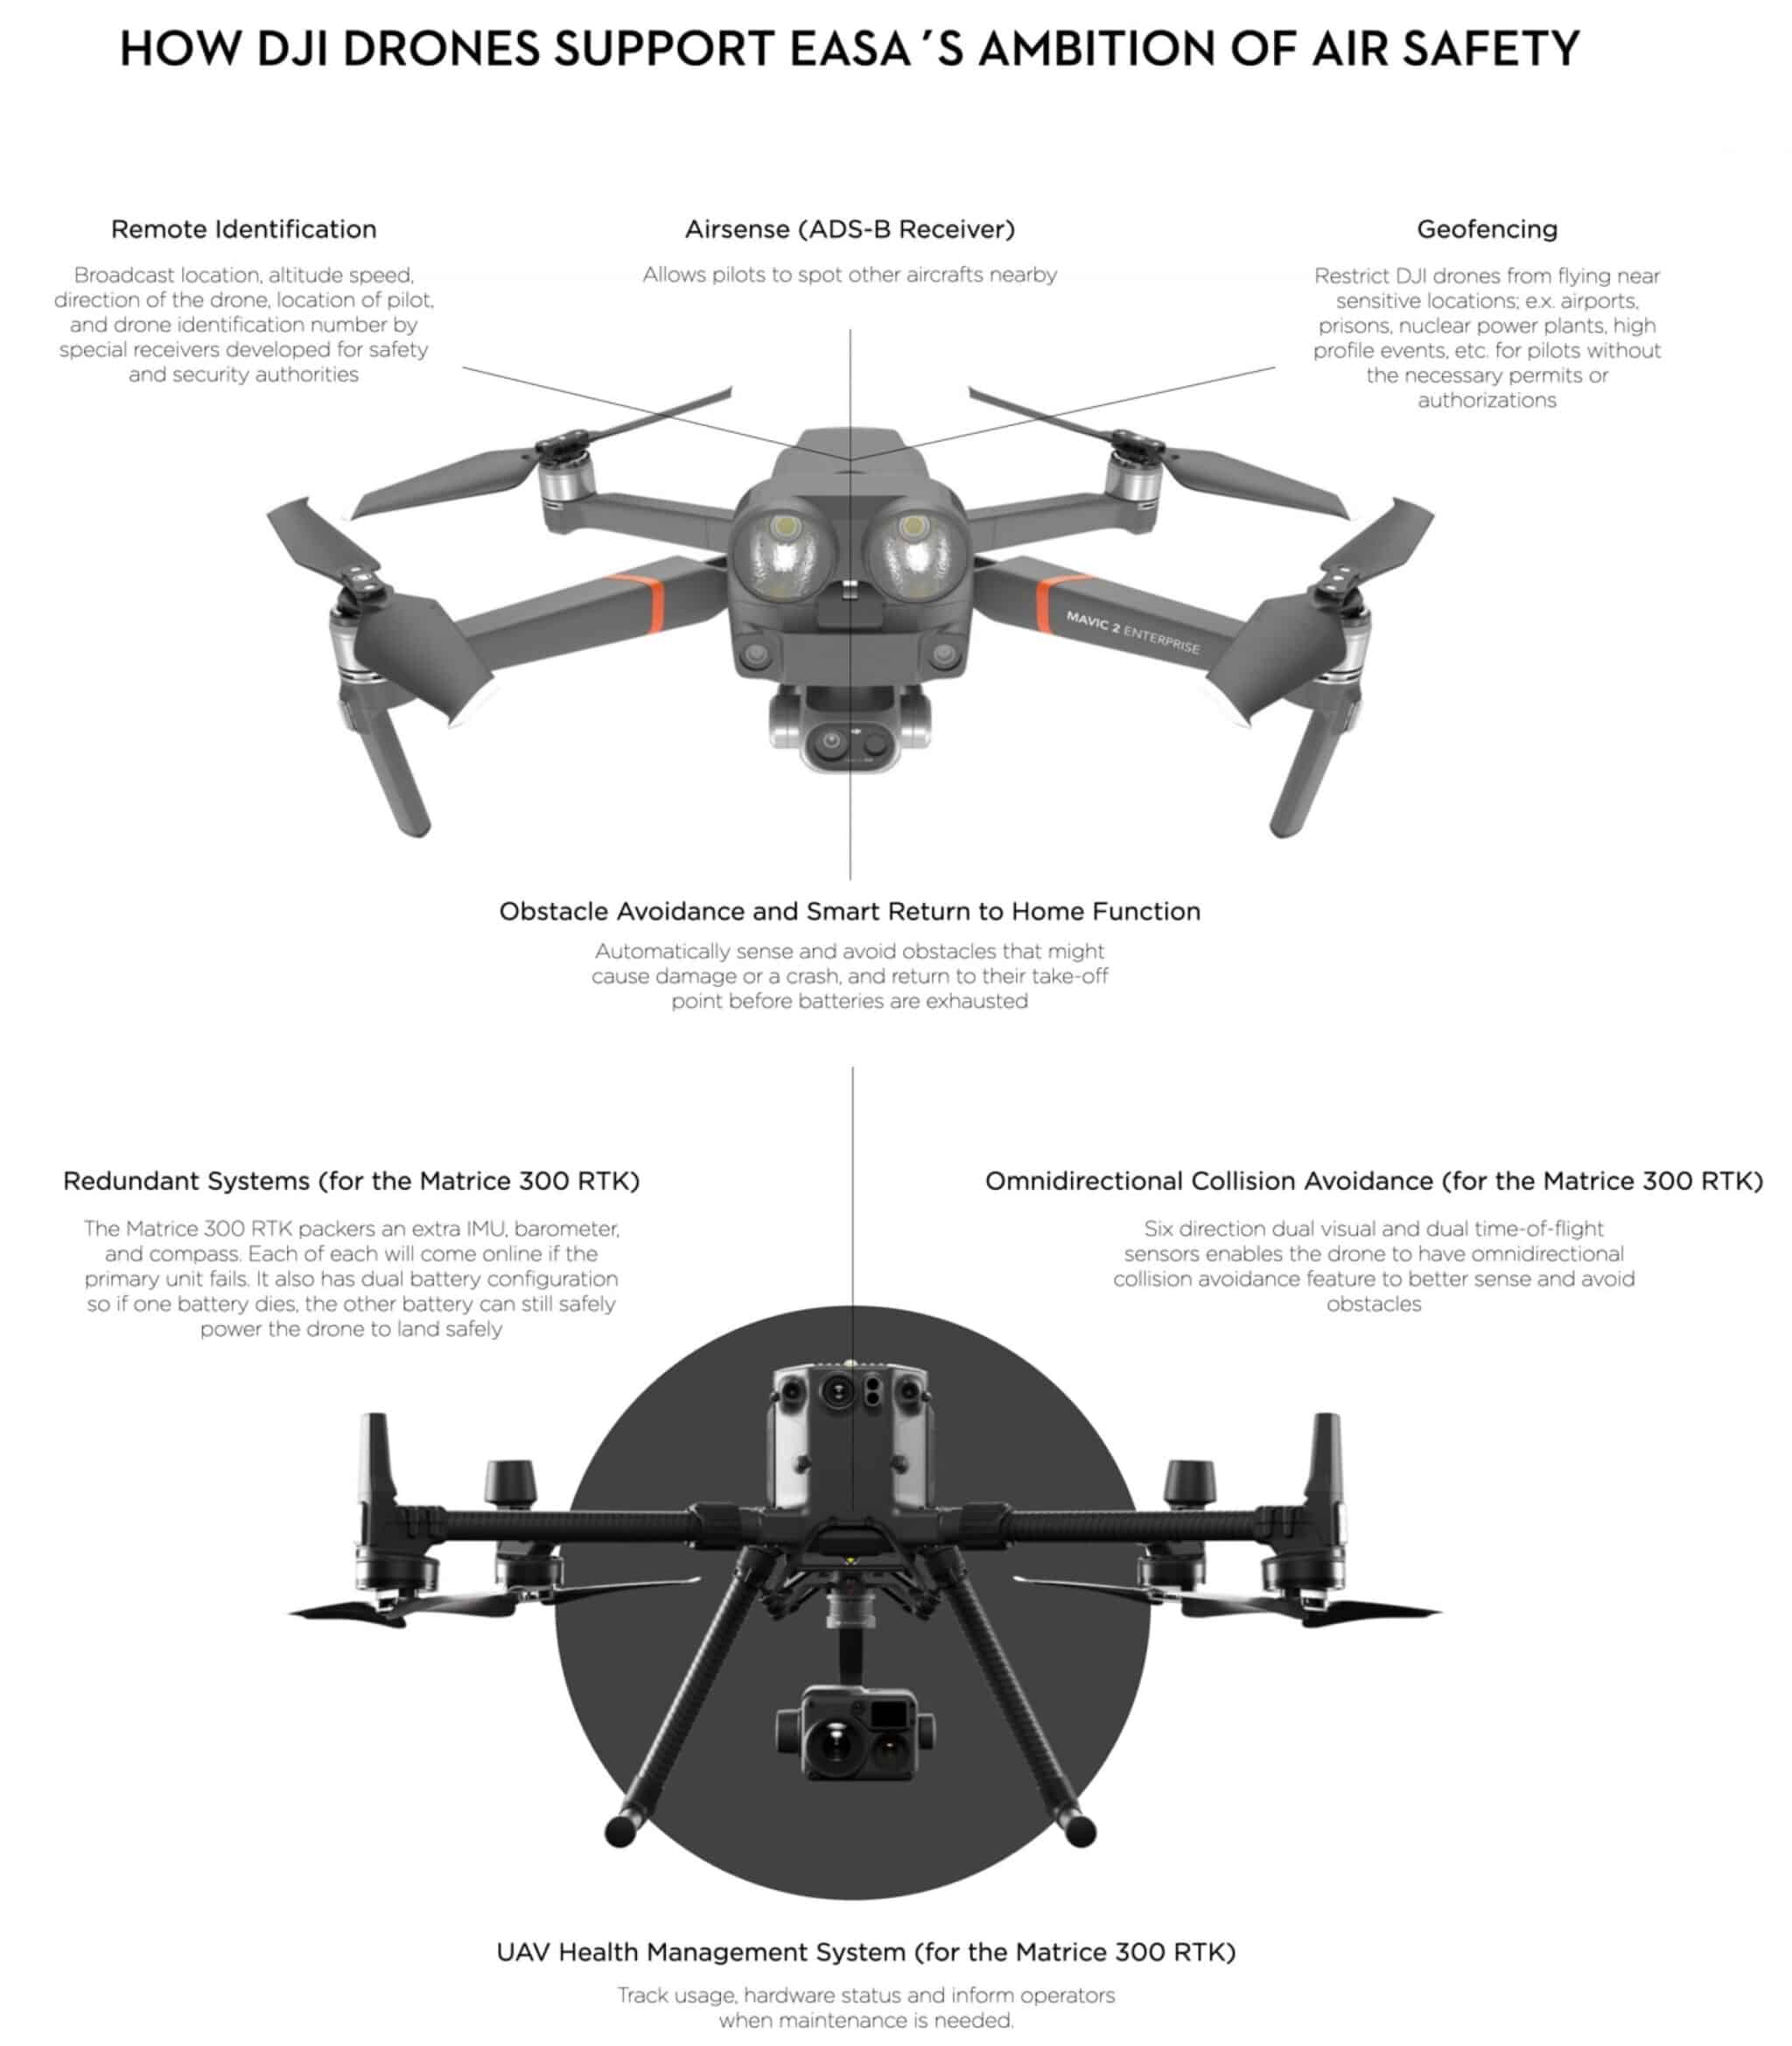 DJI investigates the option to assign Cx CE labels retroactively